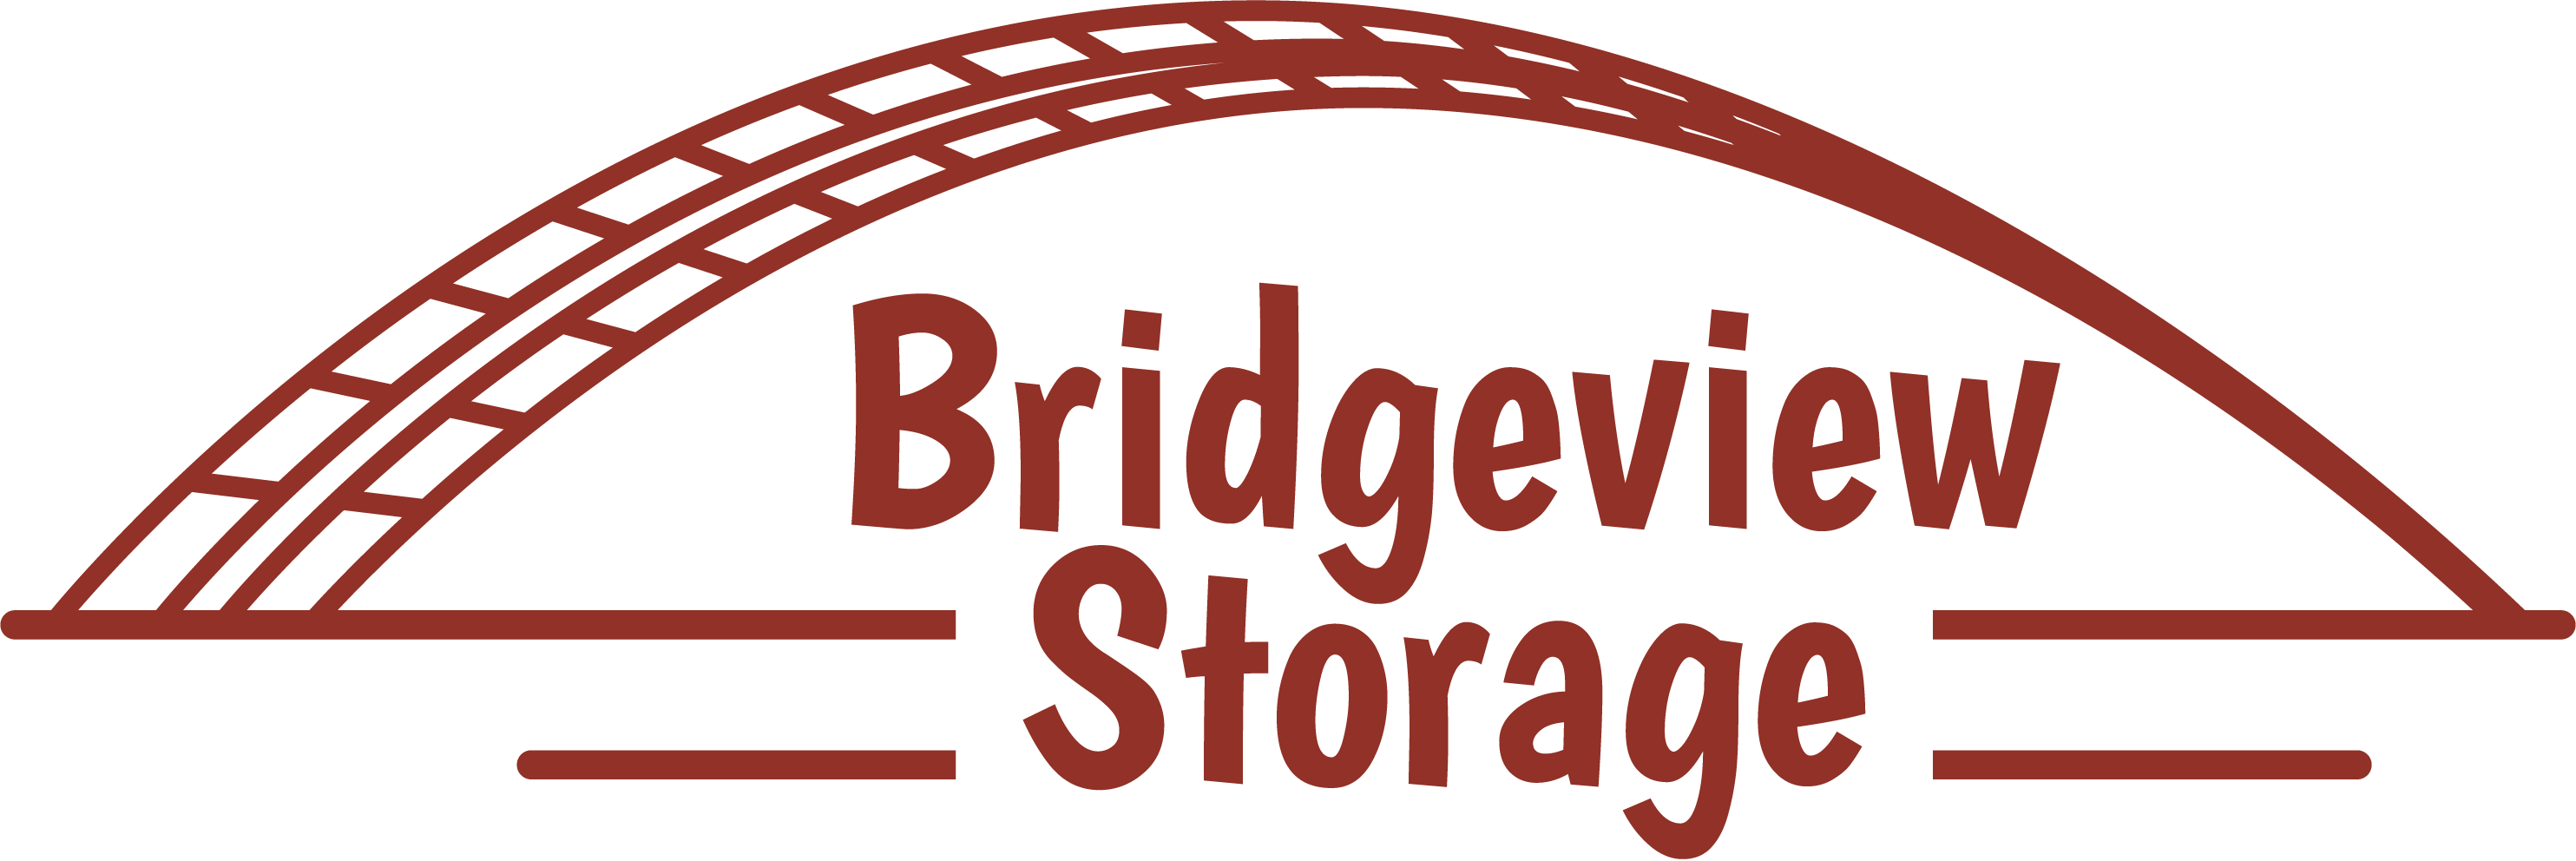 Bridgeview Storage